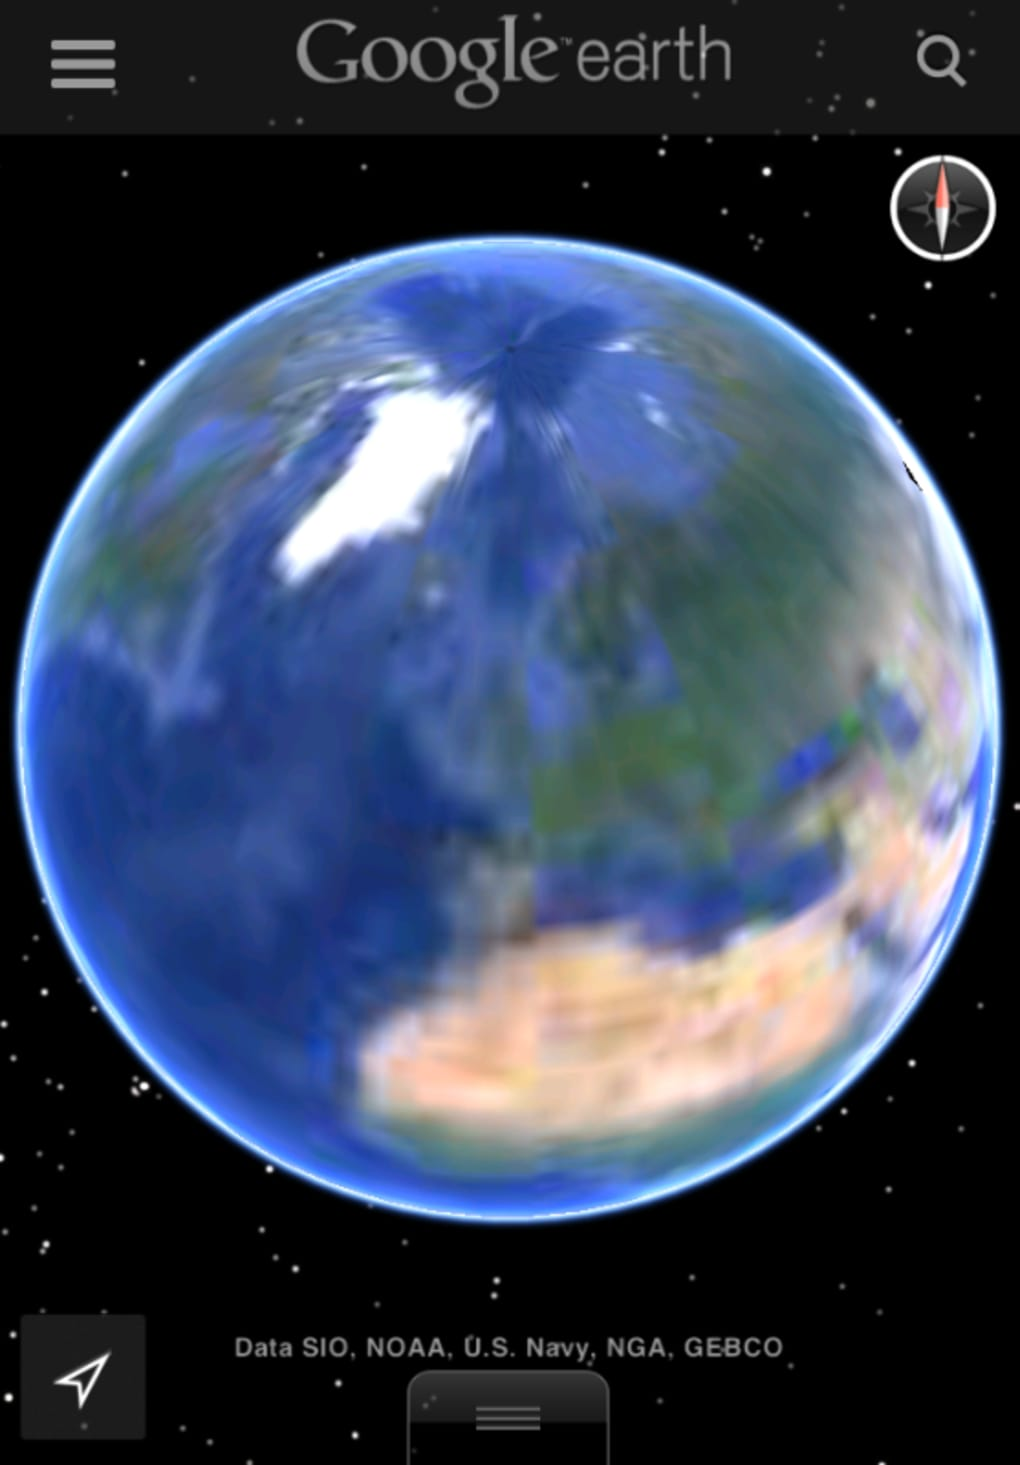 google earth download for iphone 6